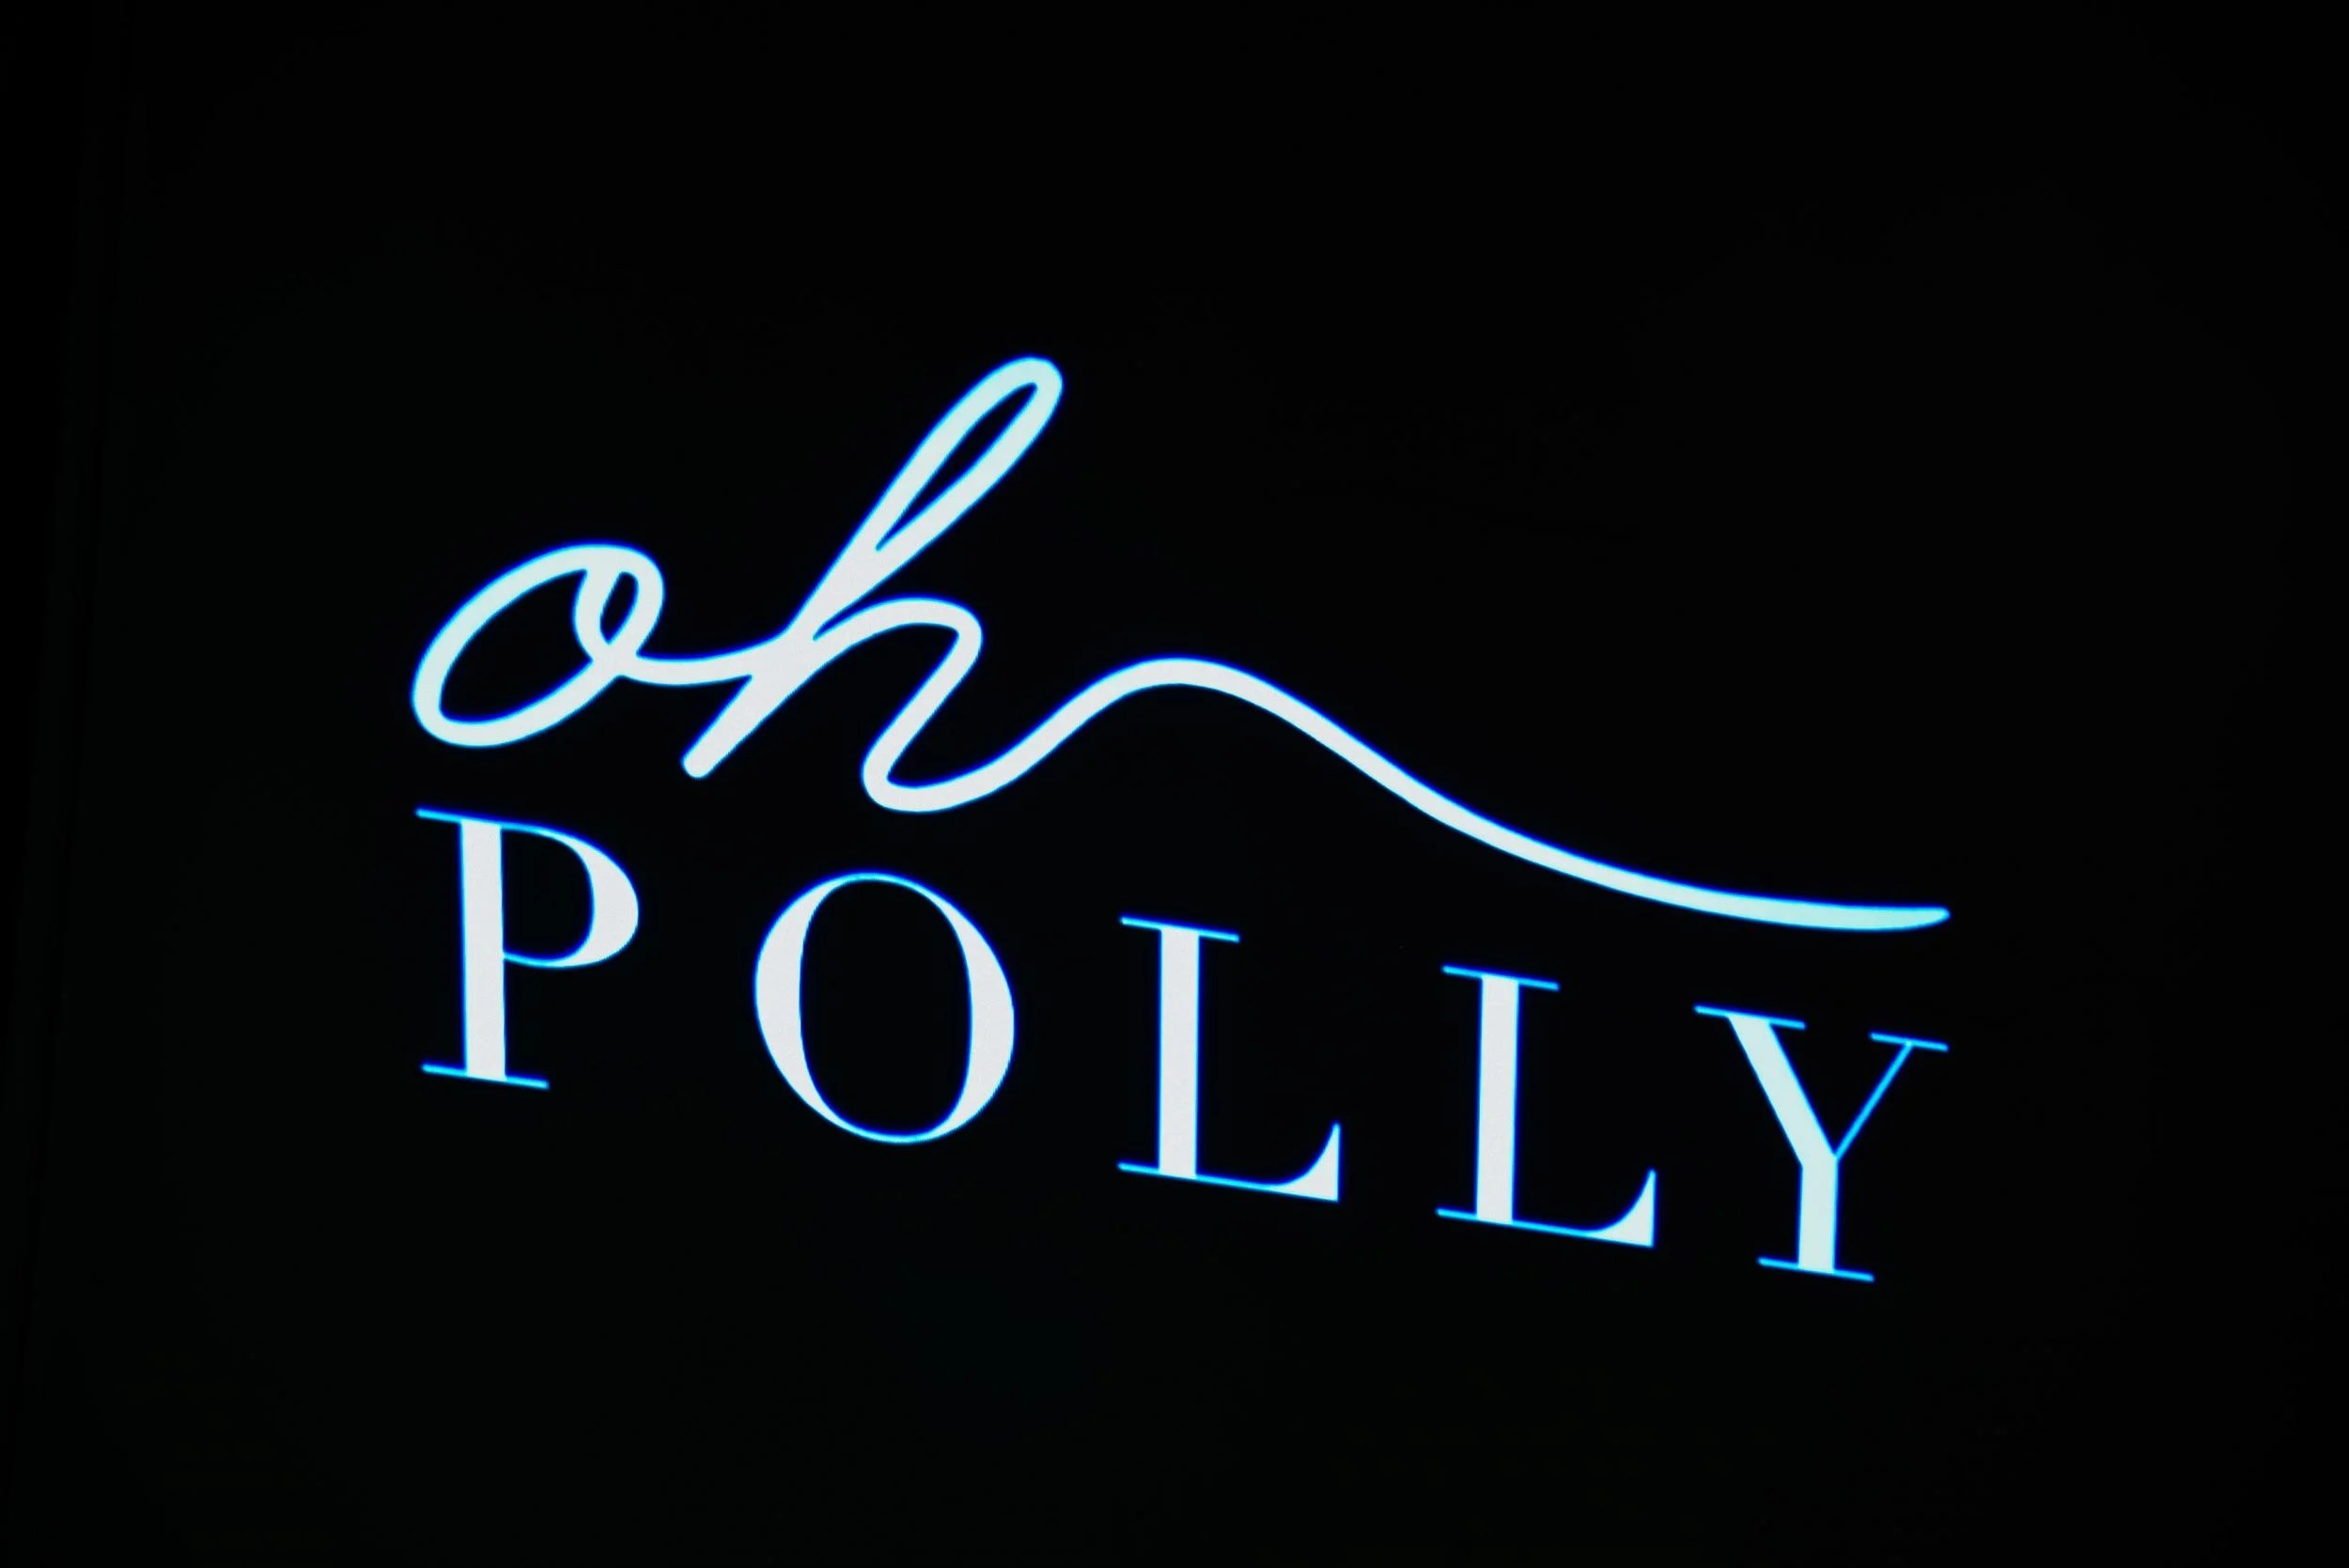 ohpollysorry1605 Oh Polly fashion brand apologises for separate plus-size Instagram account